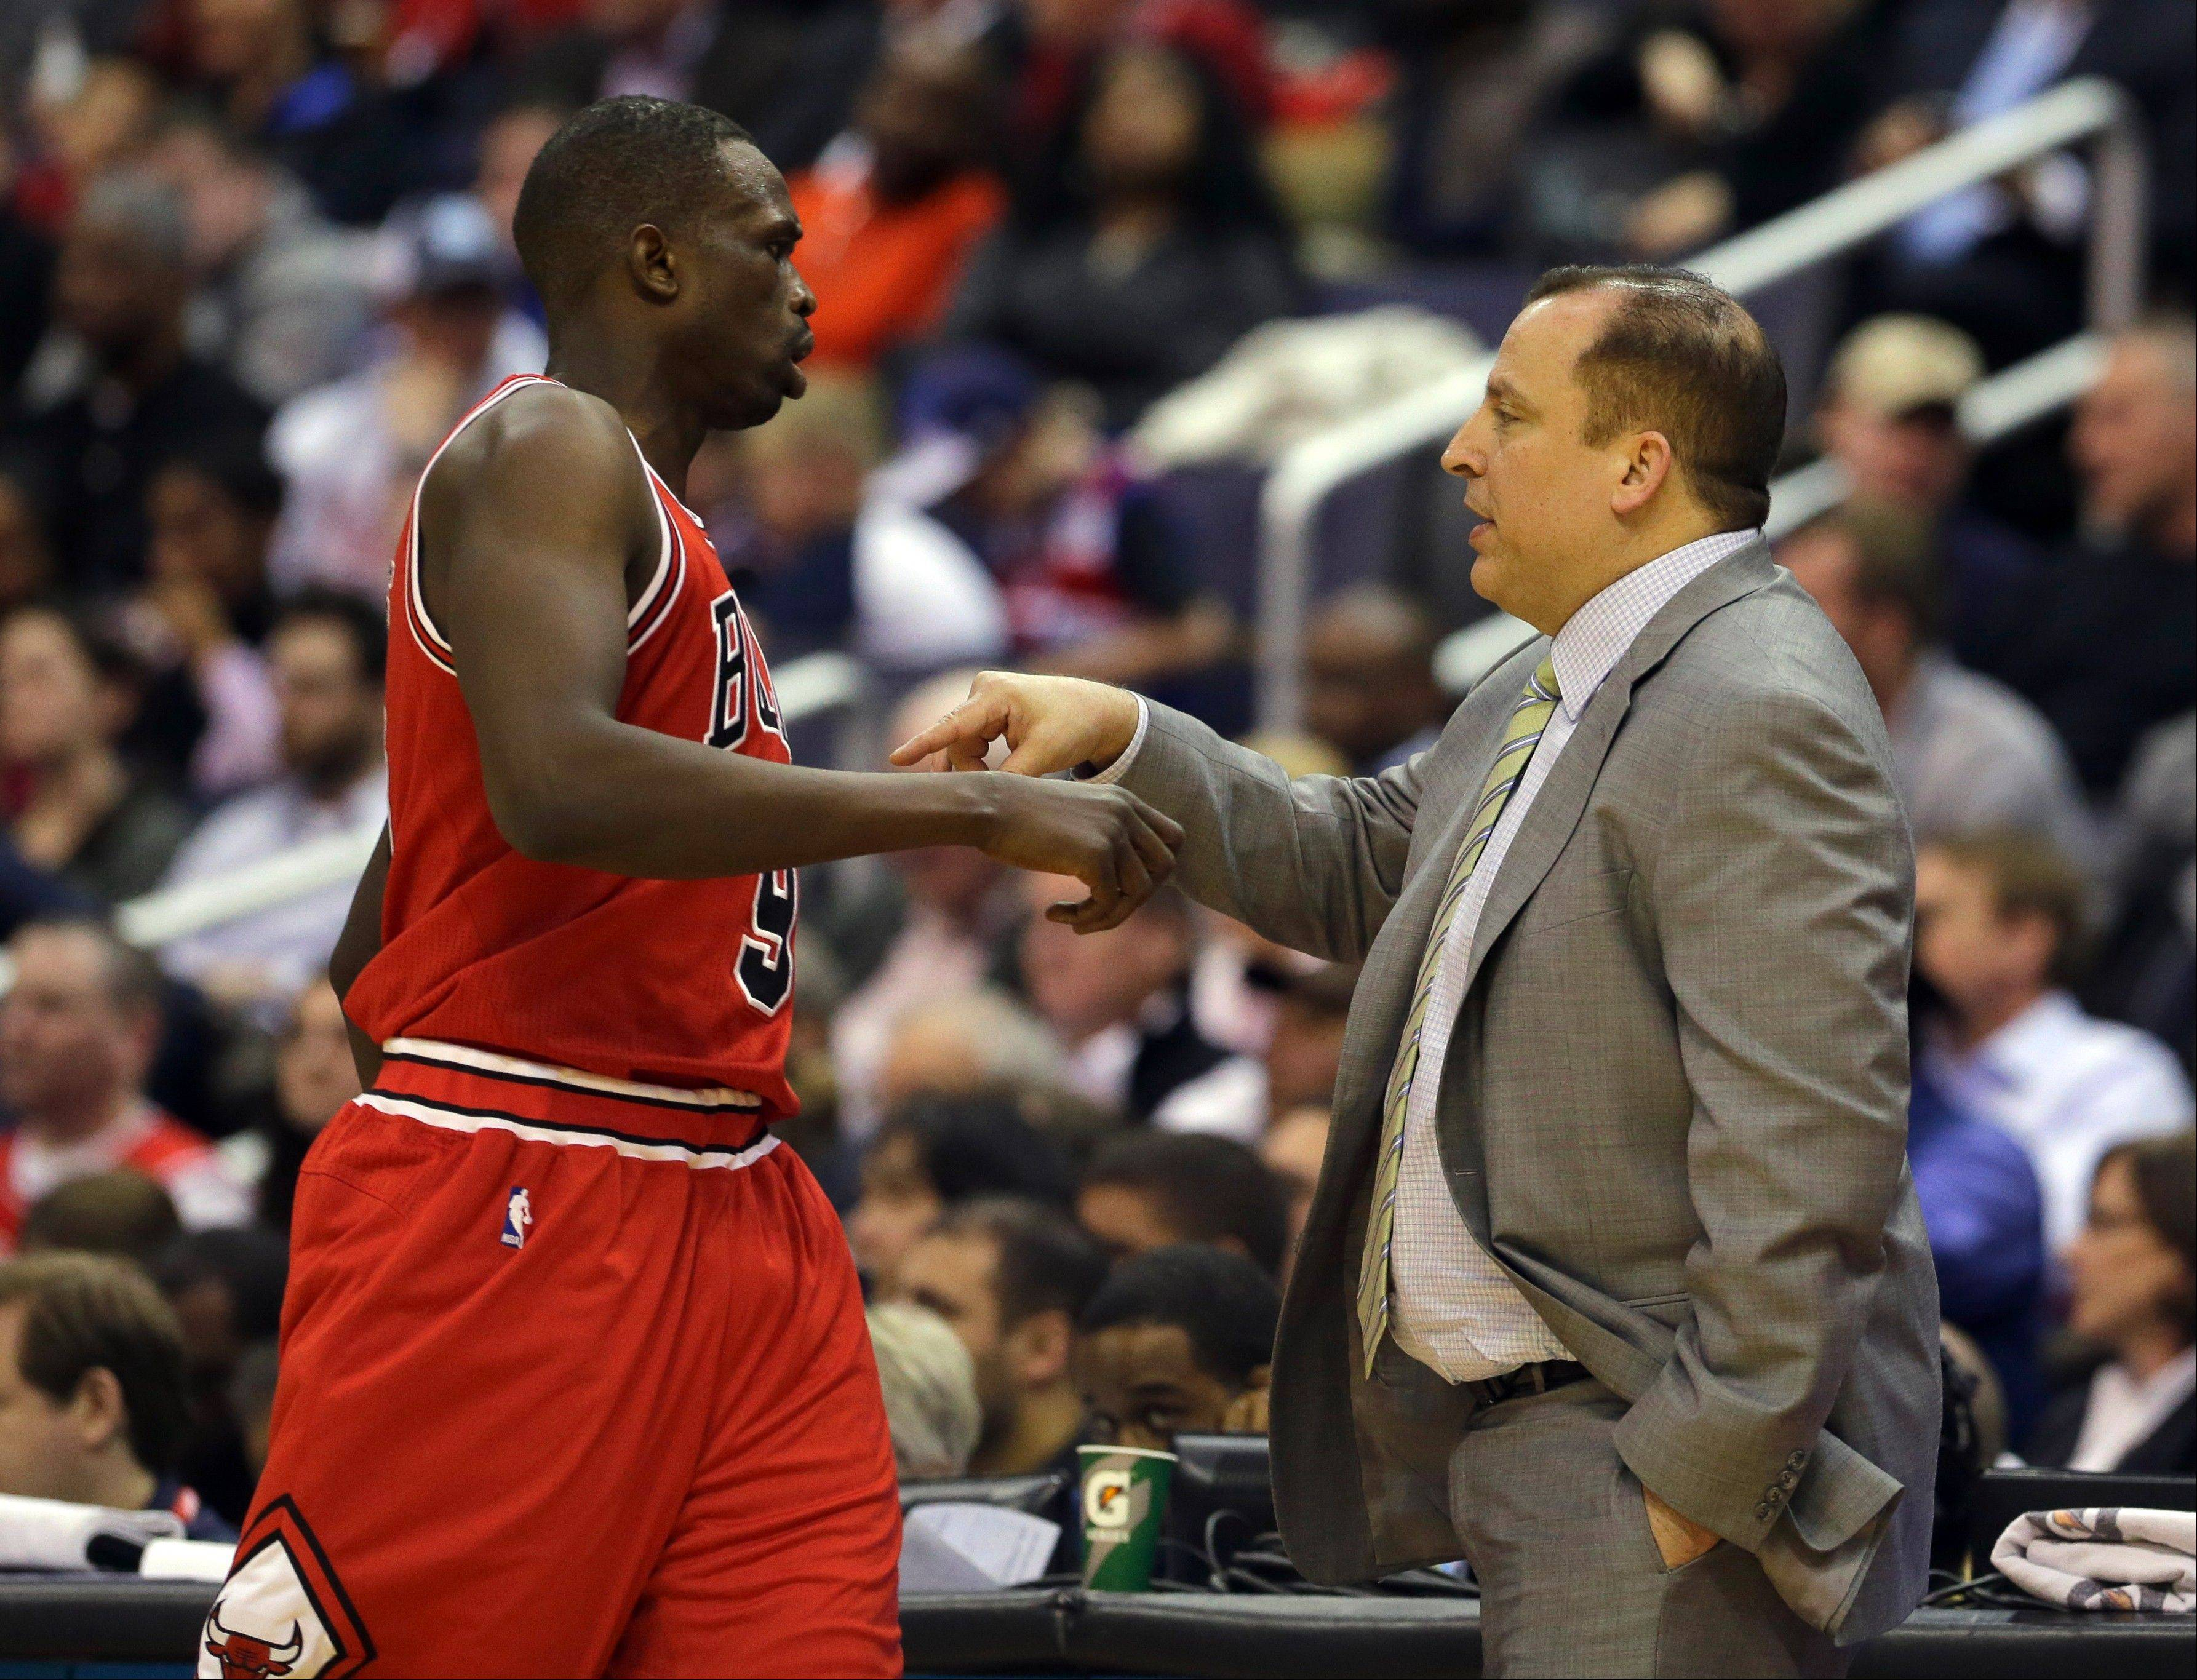 Chicago Bulls head coach Tom Thibodeau will have to find a way to replace Luol Deng after the Bulls traded him to Cleveland in a salary dump move in exchange for the injured Andrew Bynum and conditional draft picks.